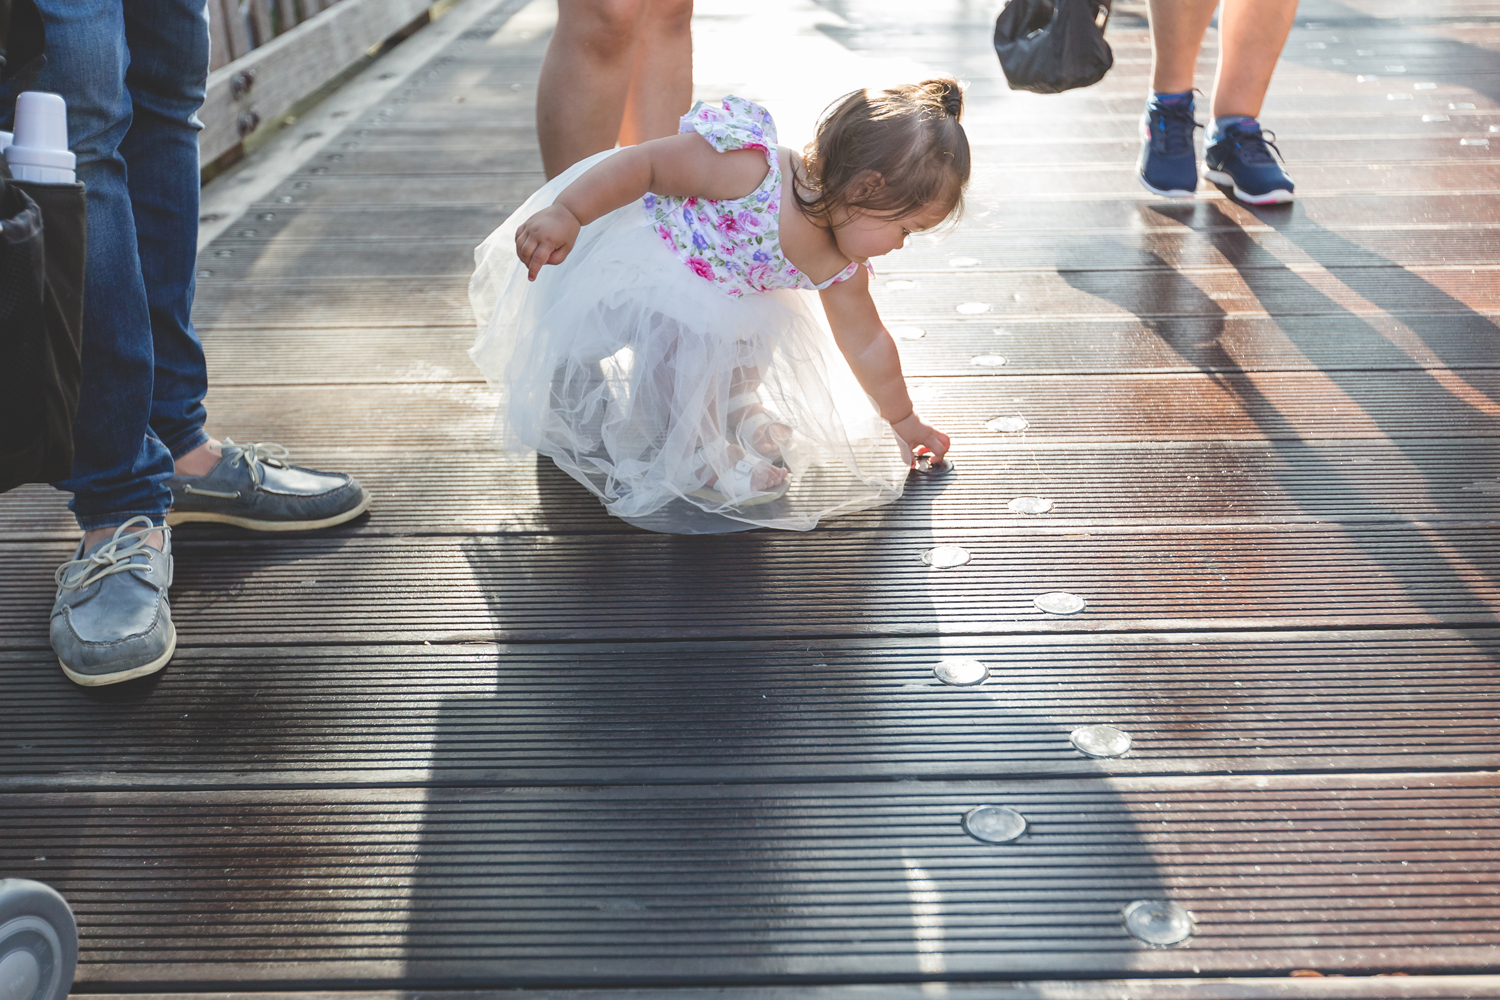 Jaime DiOrio - Disney Family Session - Orlando Family Photographer - Magic Kingdom Family Session - Documentary Photographer (105).jpg